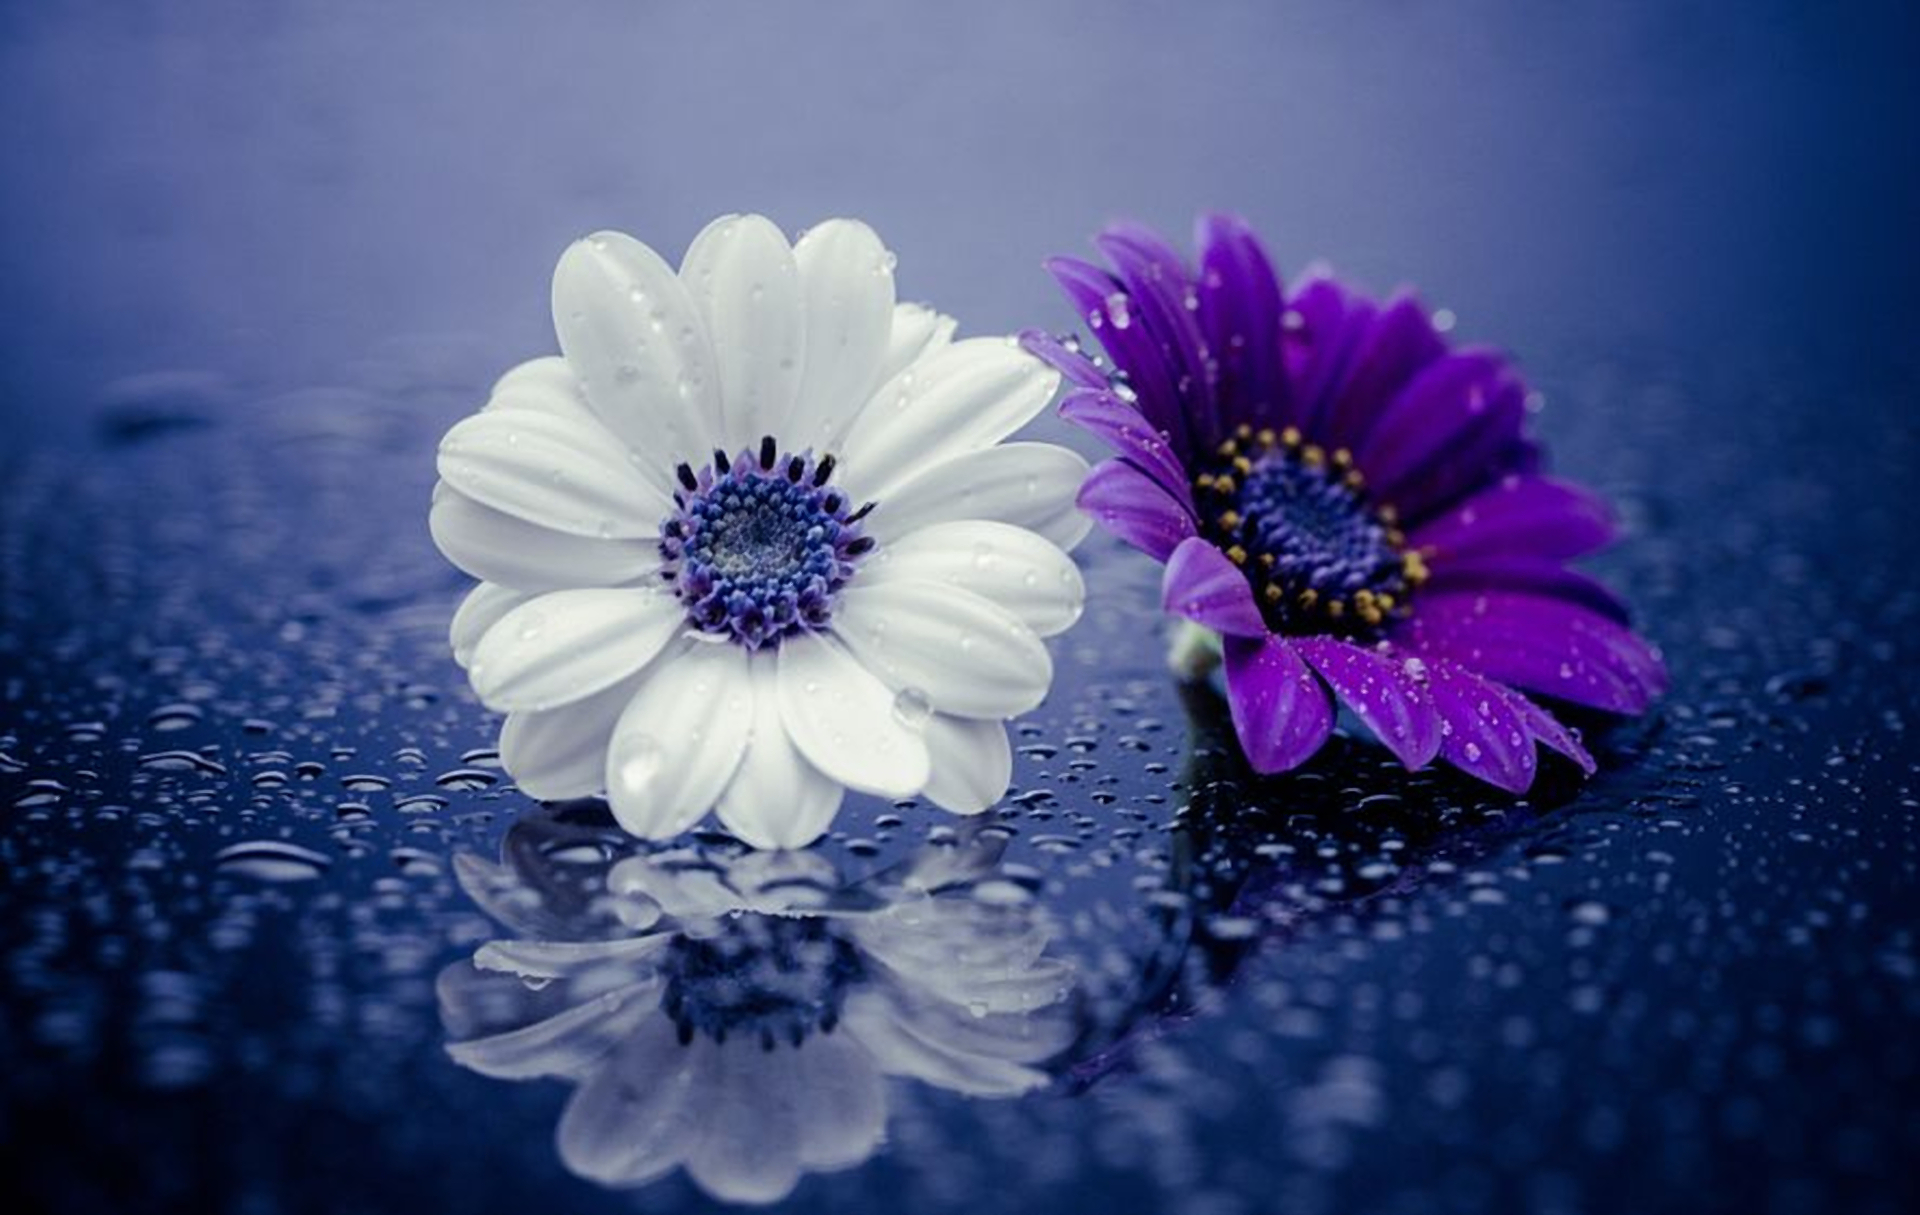 wet purple and white daisies hd wallpaper background